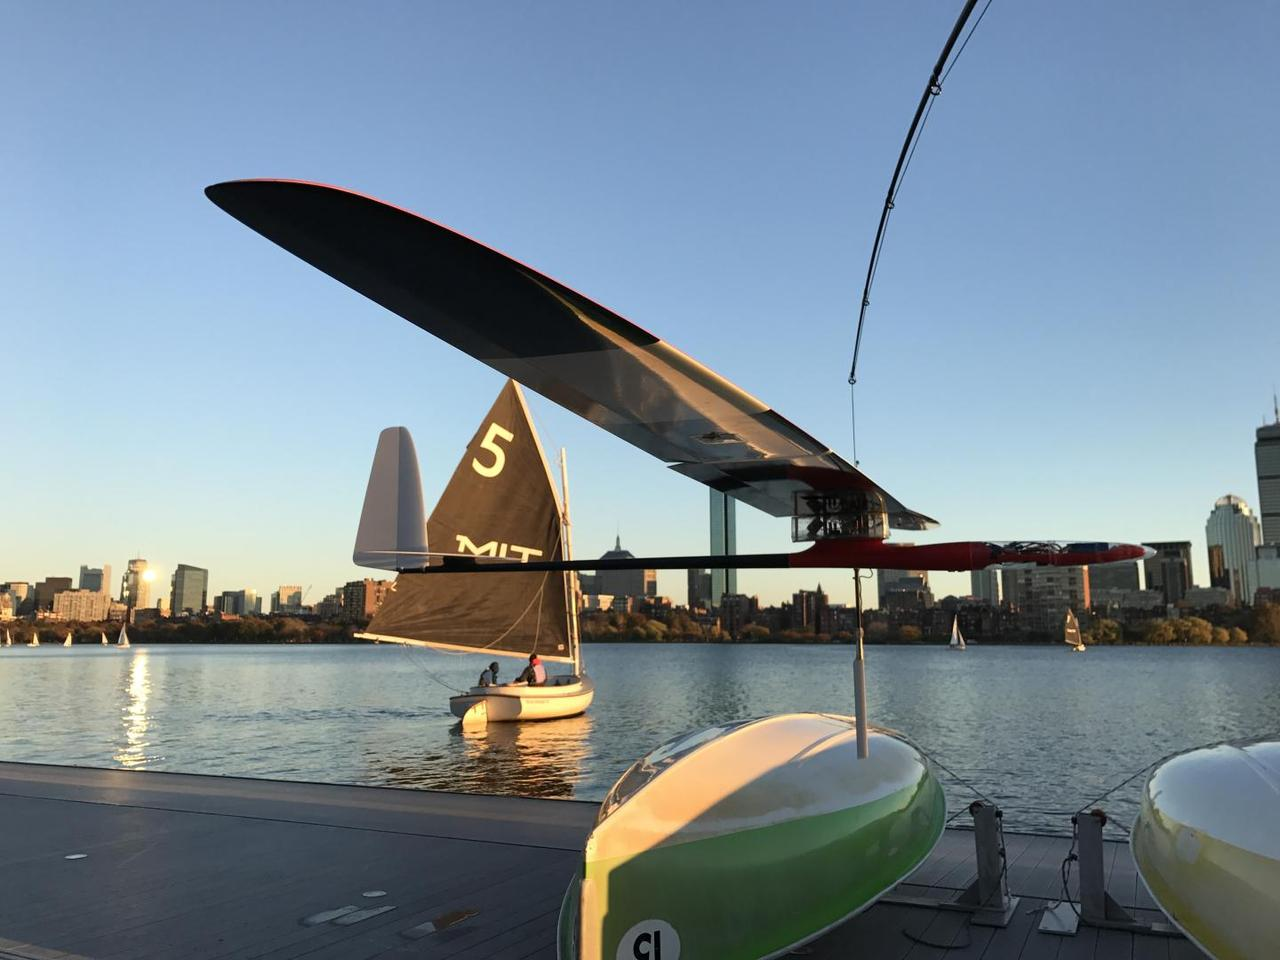 The Albatross glider, designed by MIT engineers, on the Charles River in Boston